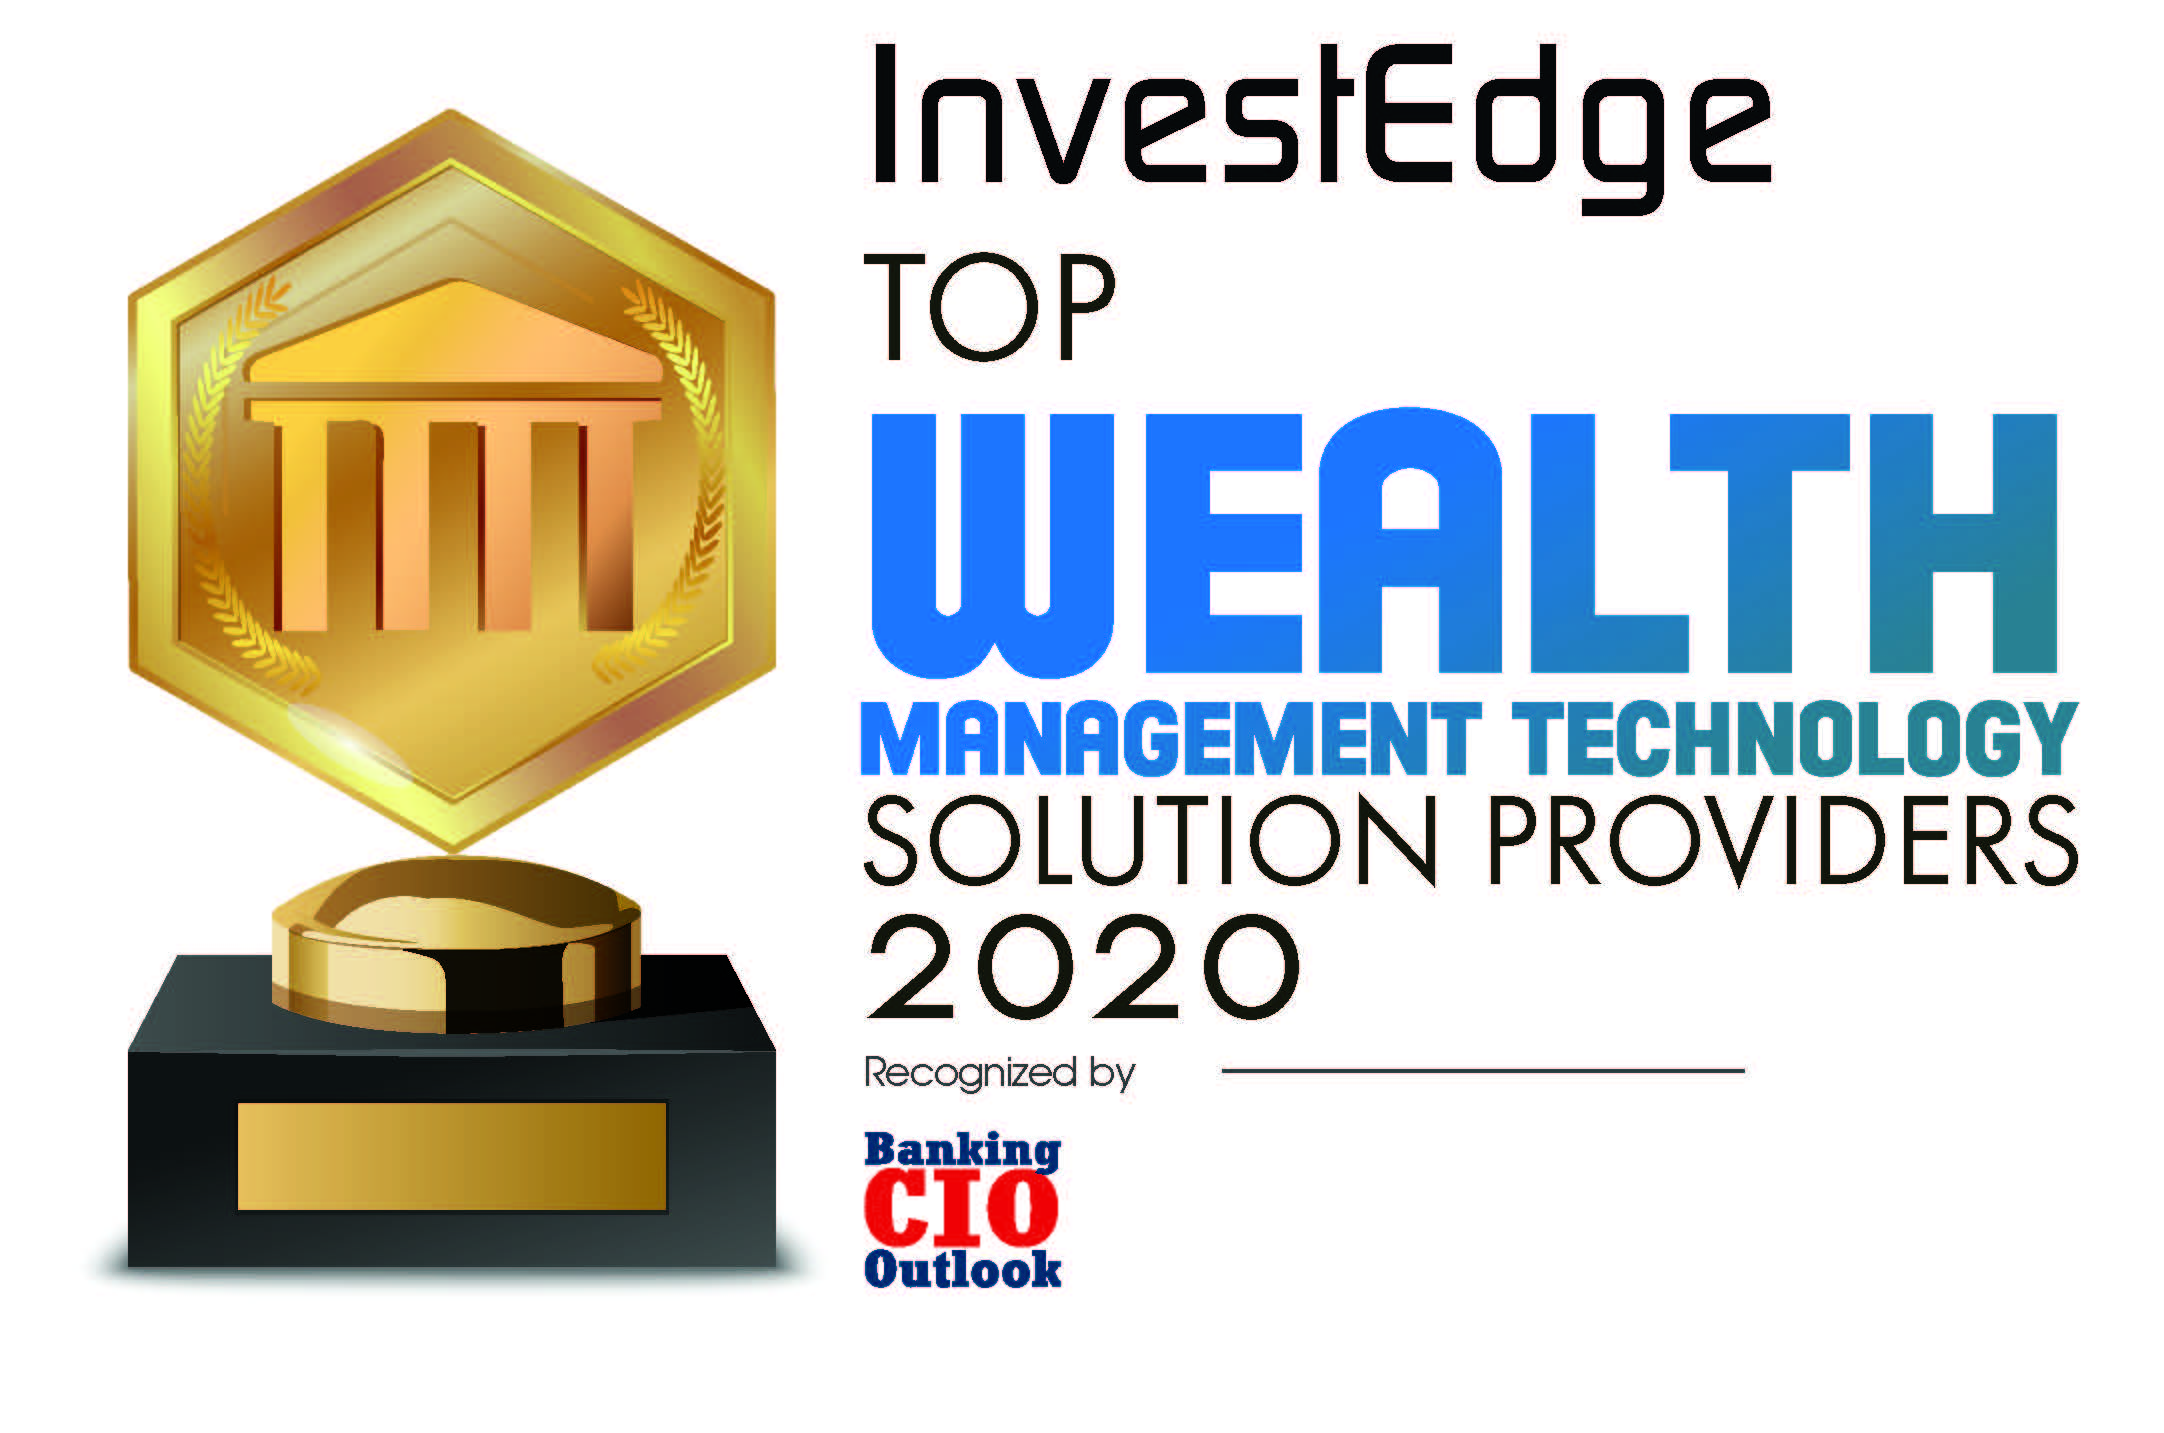 InvestEdge Named Top Wealth Management Technology Solution Provider by Banking CIO Outlook